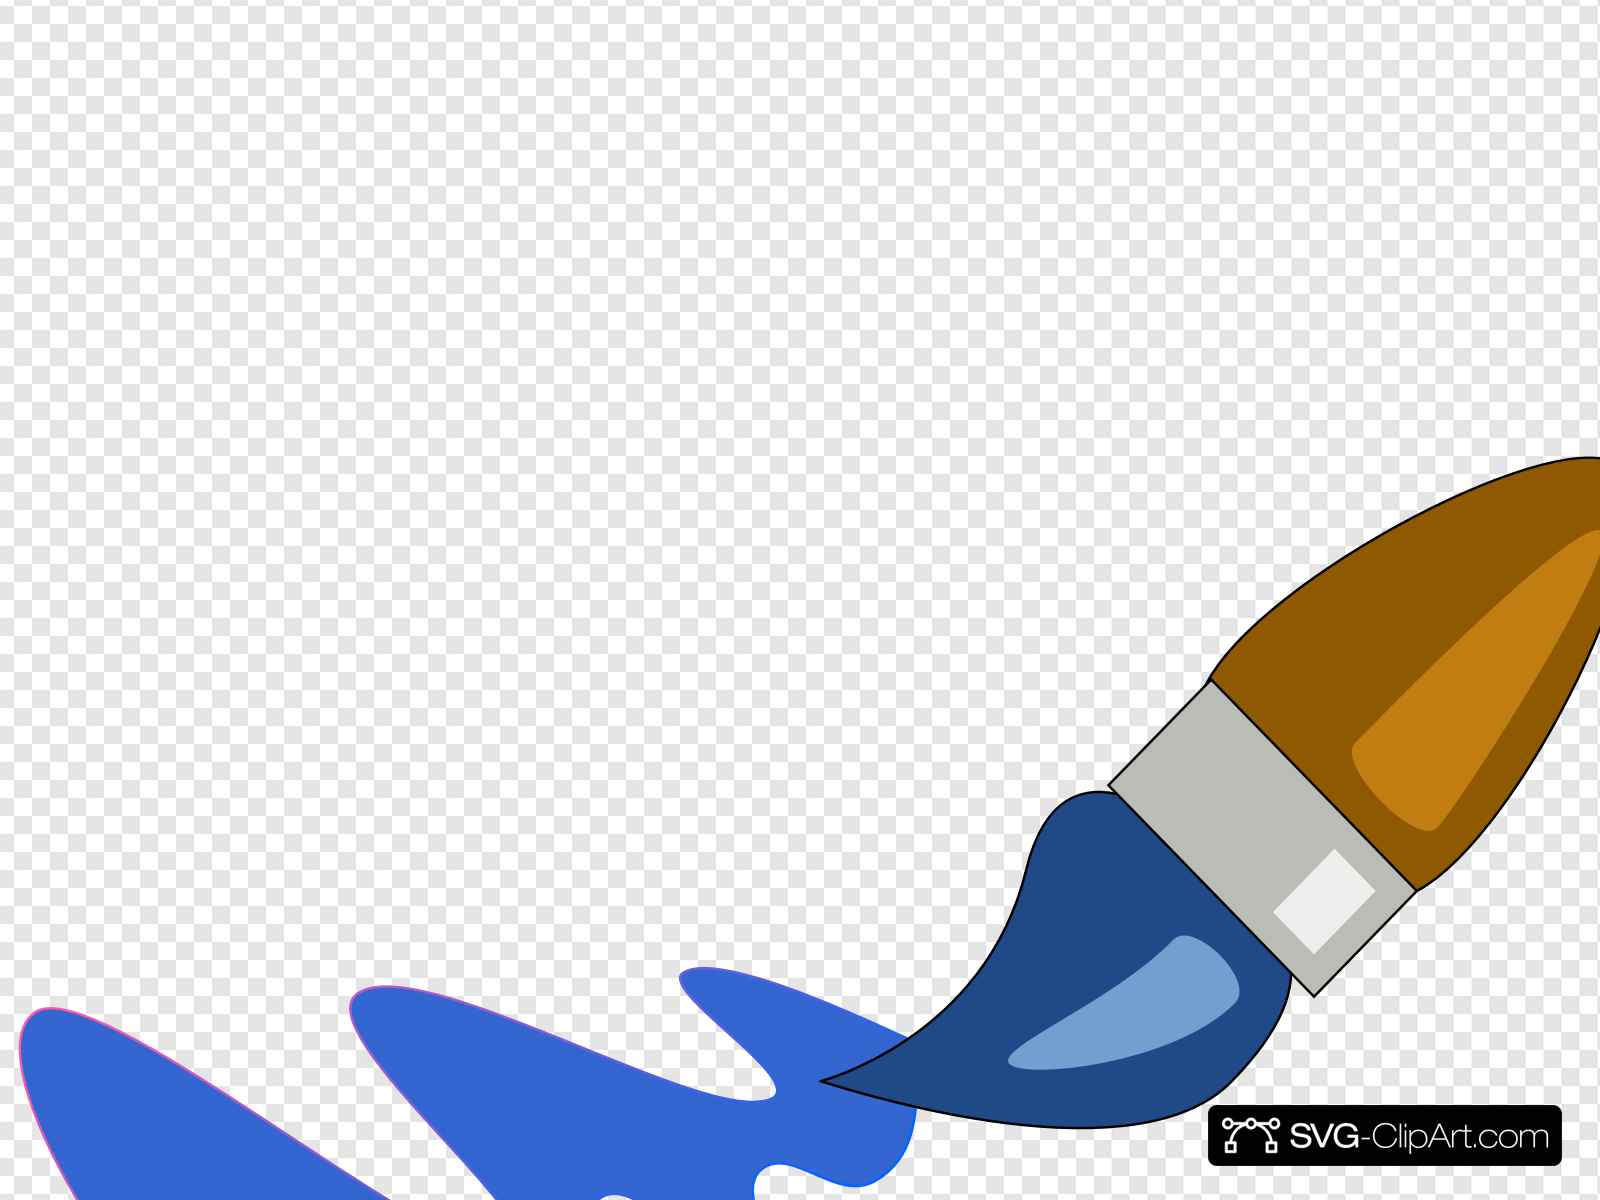 Paint Clip art, Icon and SVG.